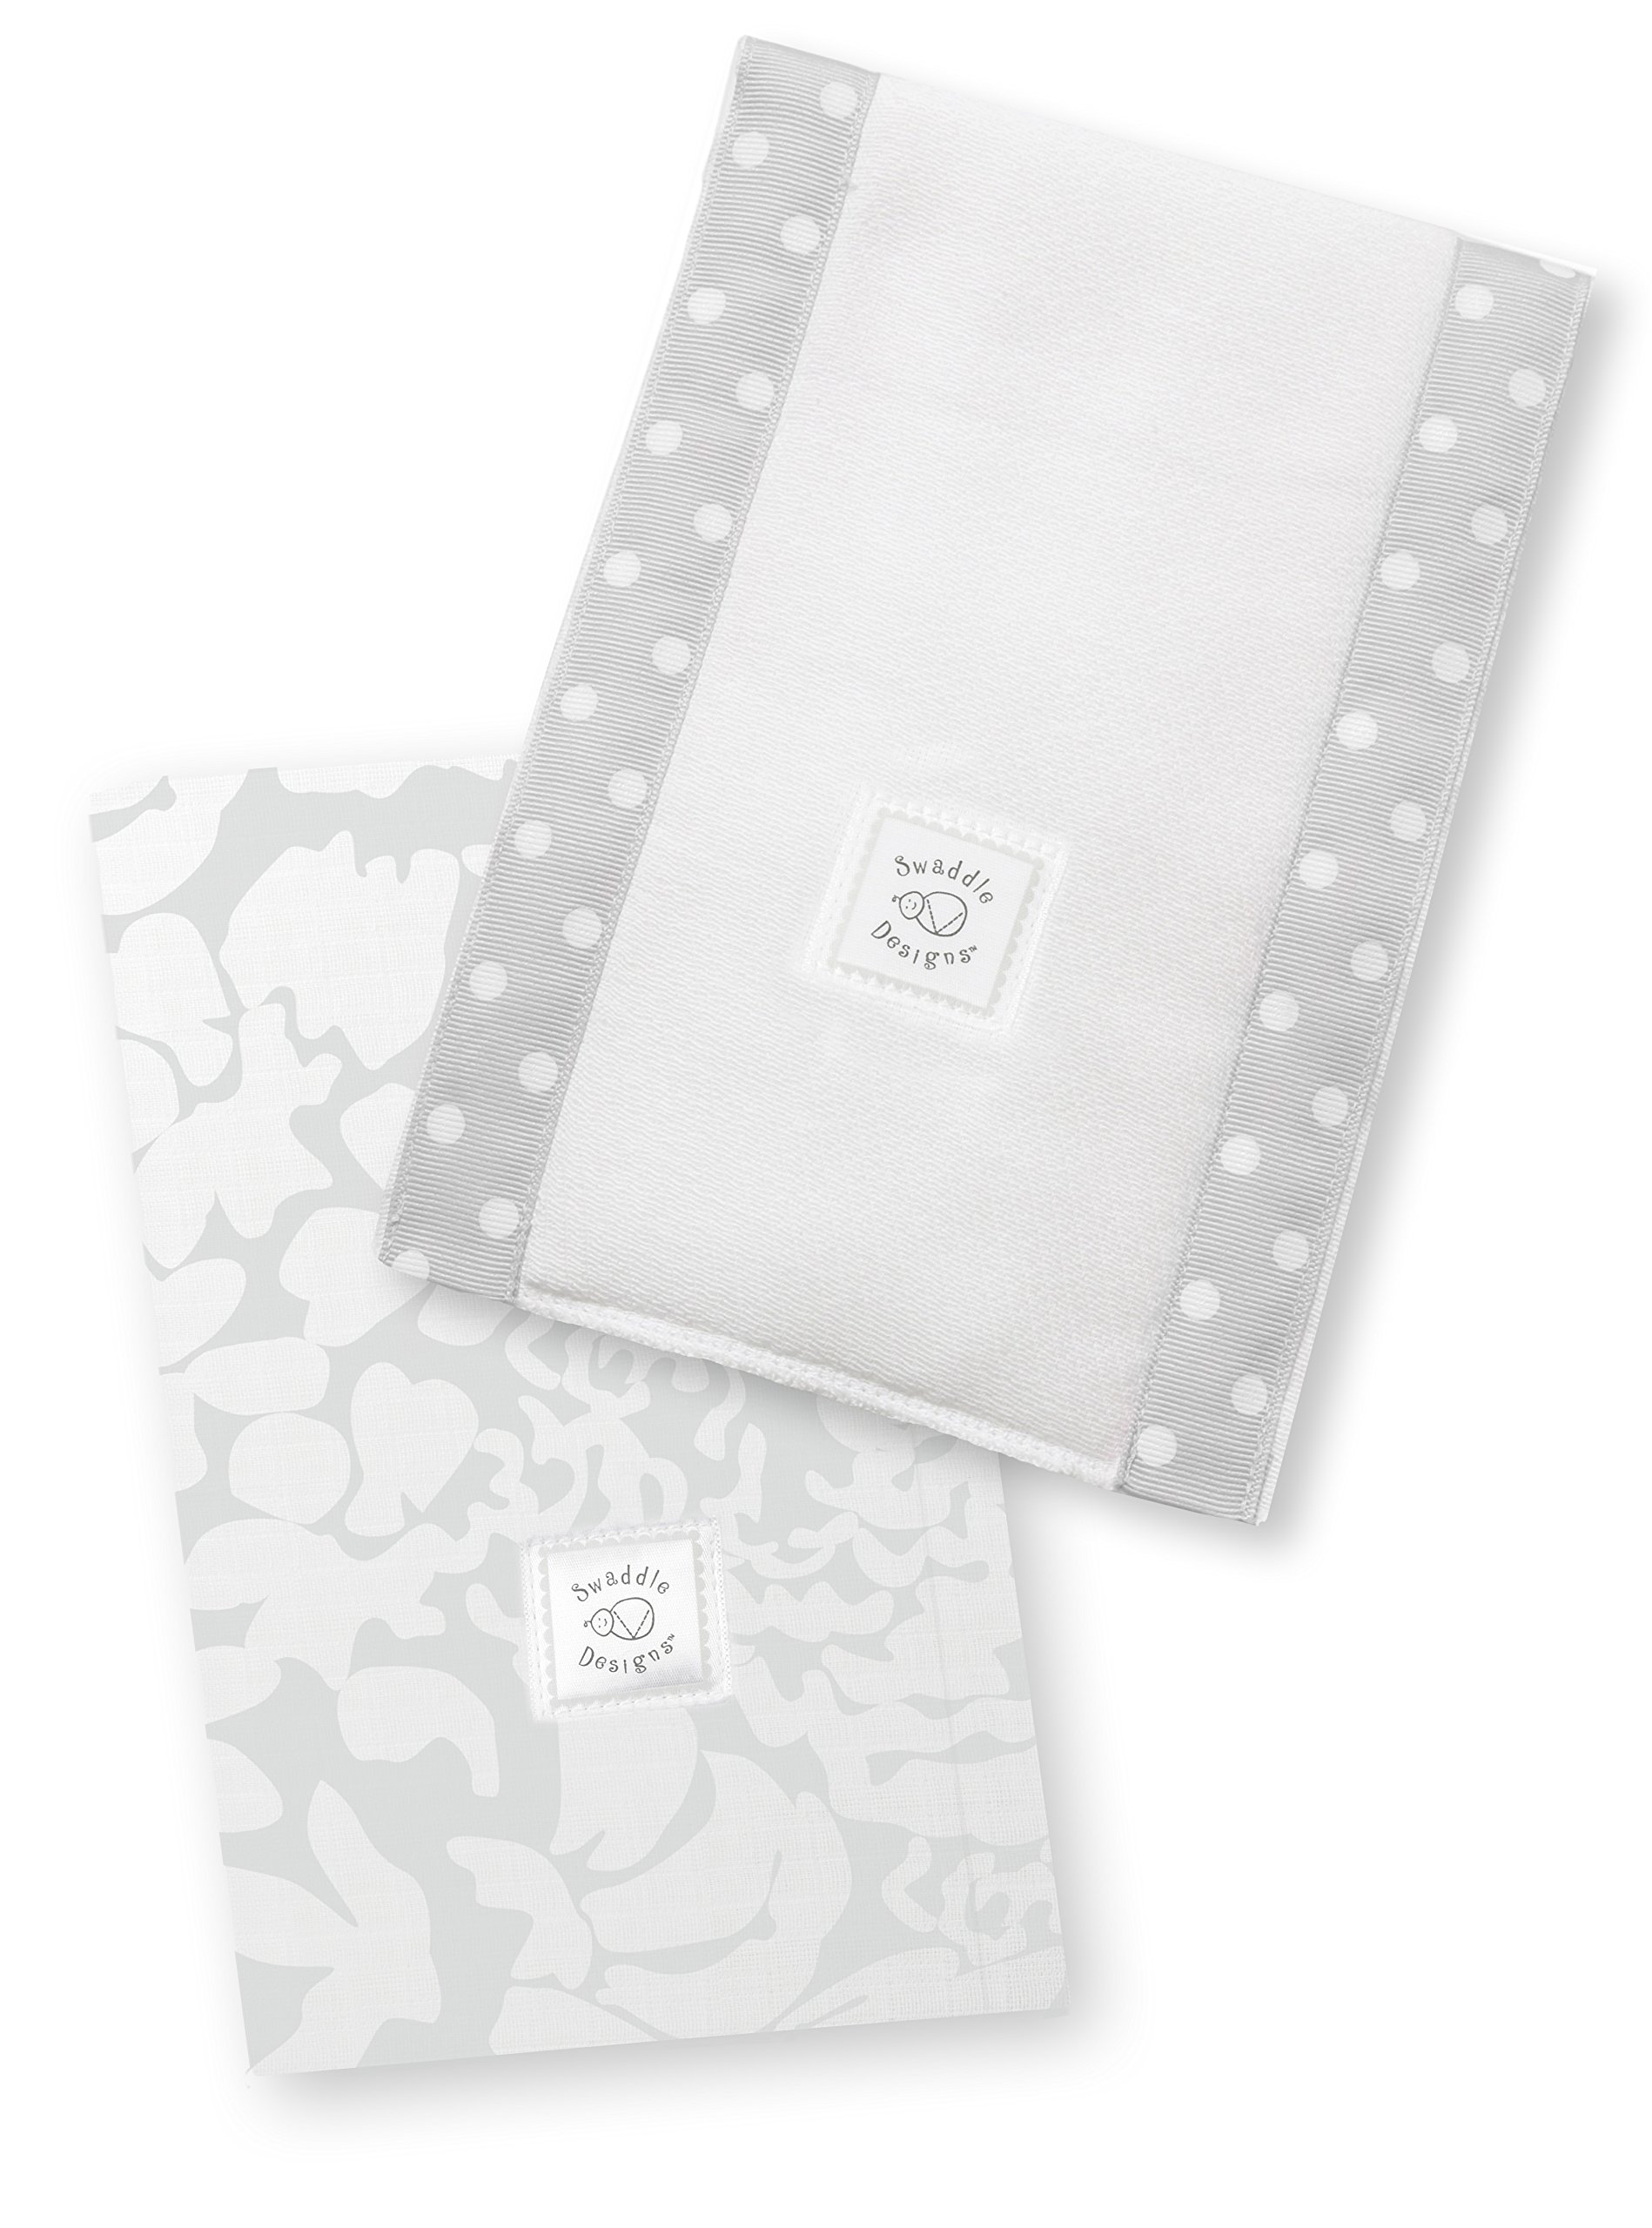 SwaddleDesigns Baby Burpies, Set of 2 Cotton Burp Cloths, Sterling Lush